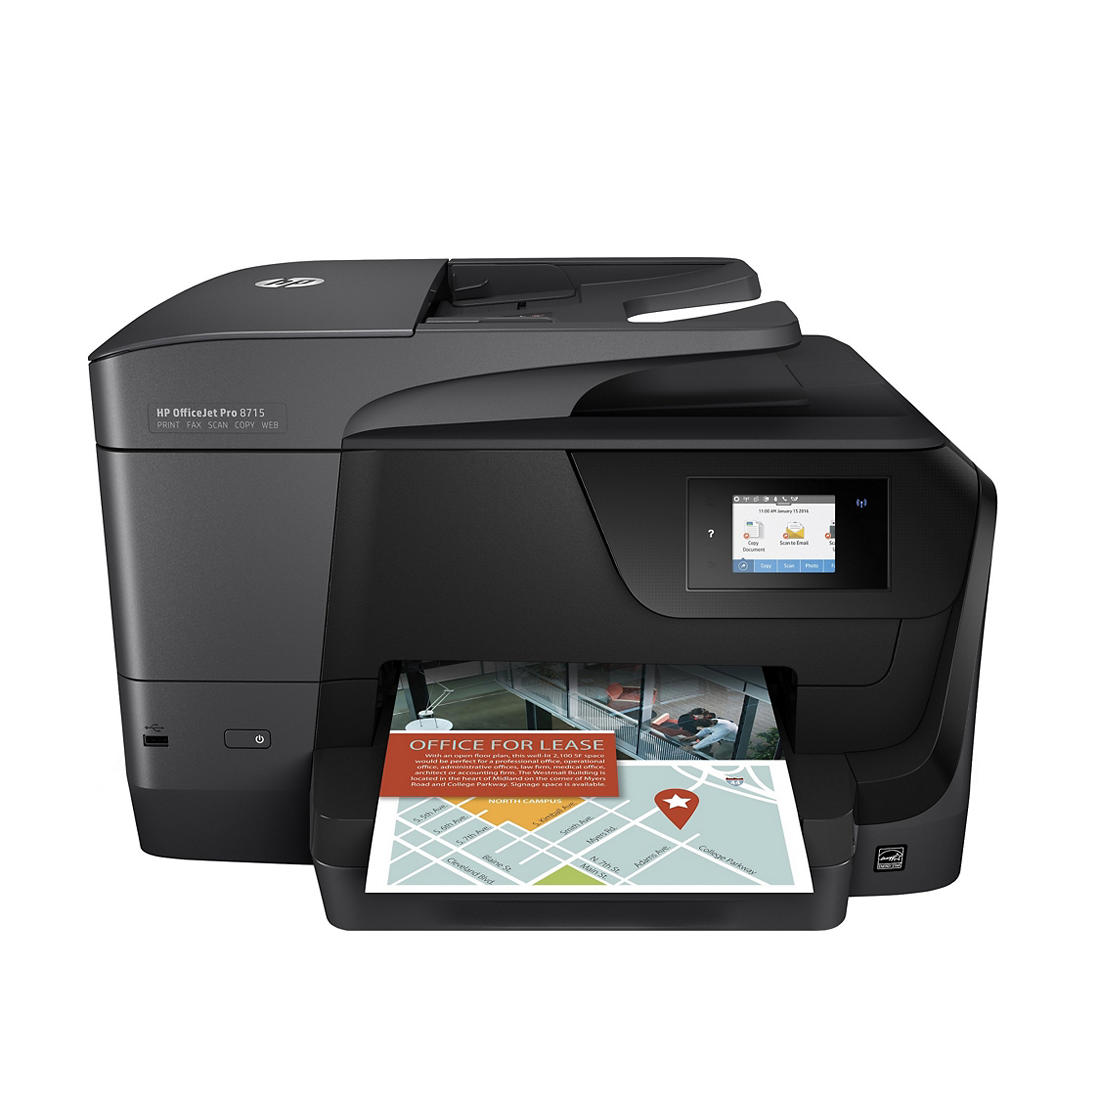 HP OfficeJet Pro 8715 All-in-One Printer with Instant Ink